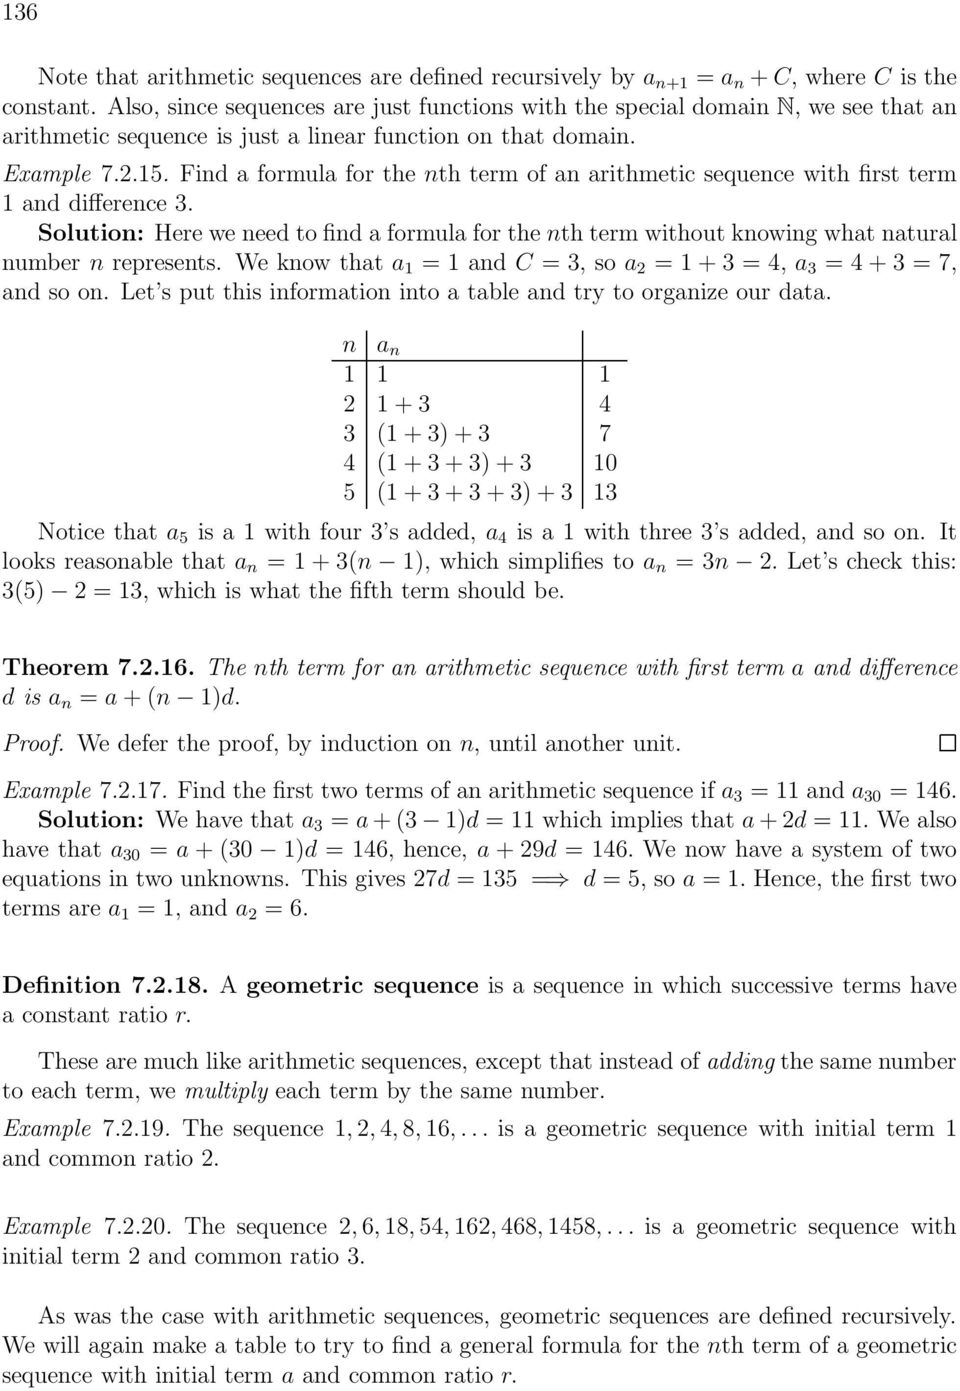 Find a formula for the nth term of an arithmetic sequence with first term 1 and difference 3.